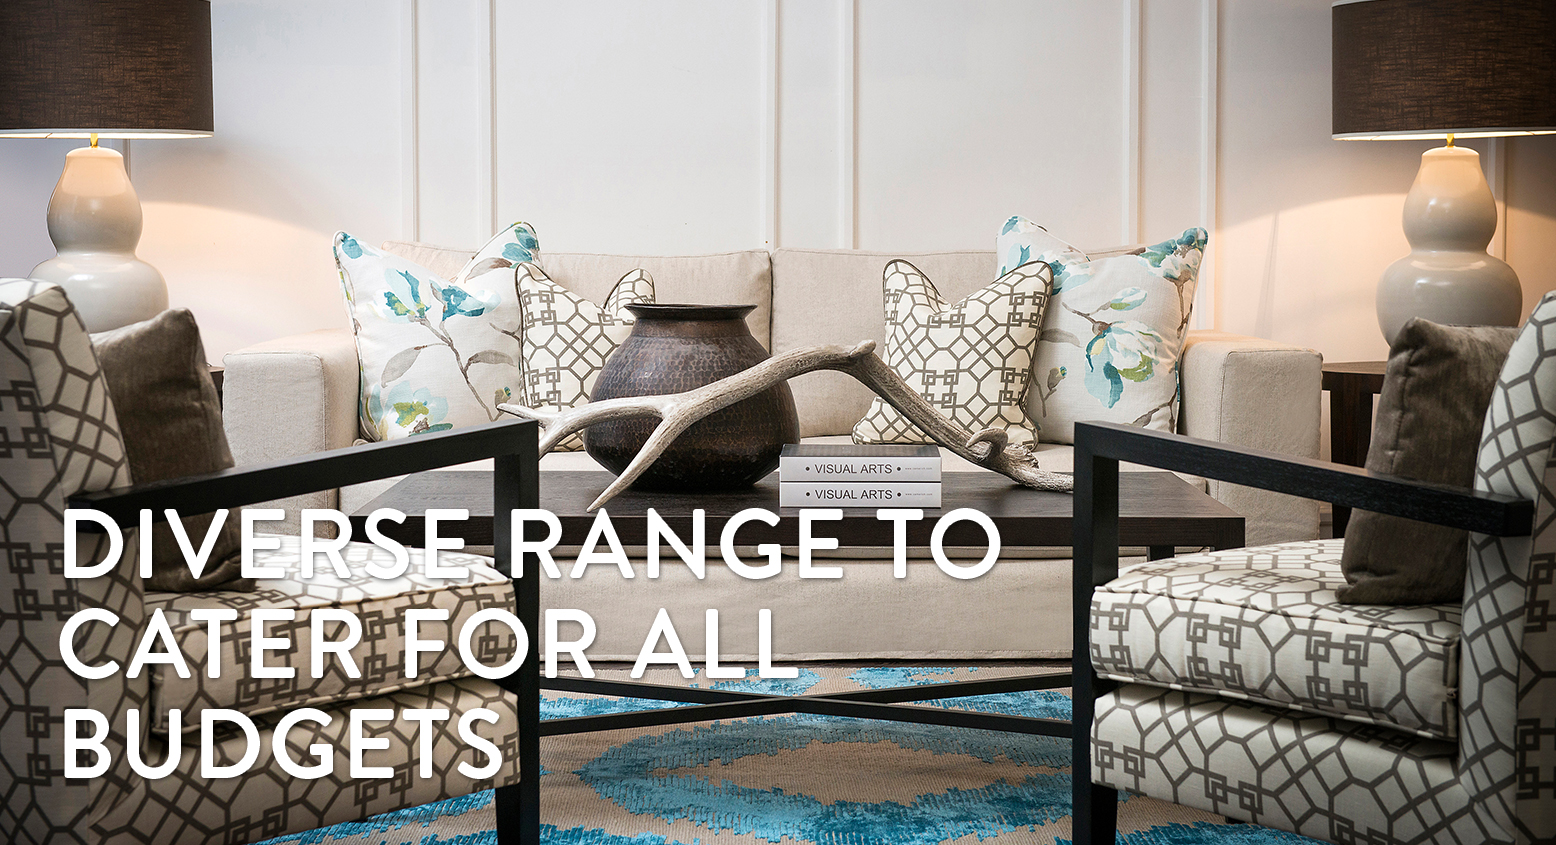 Sydney Property Styling and Property Staging Packages for all budgets